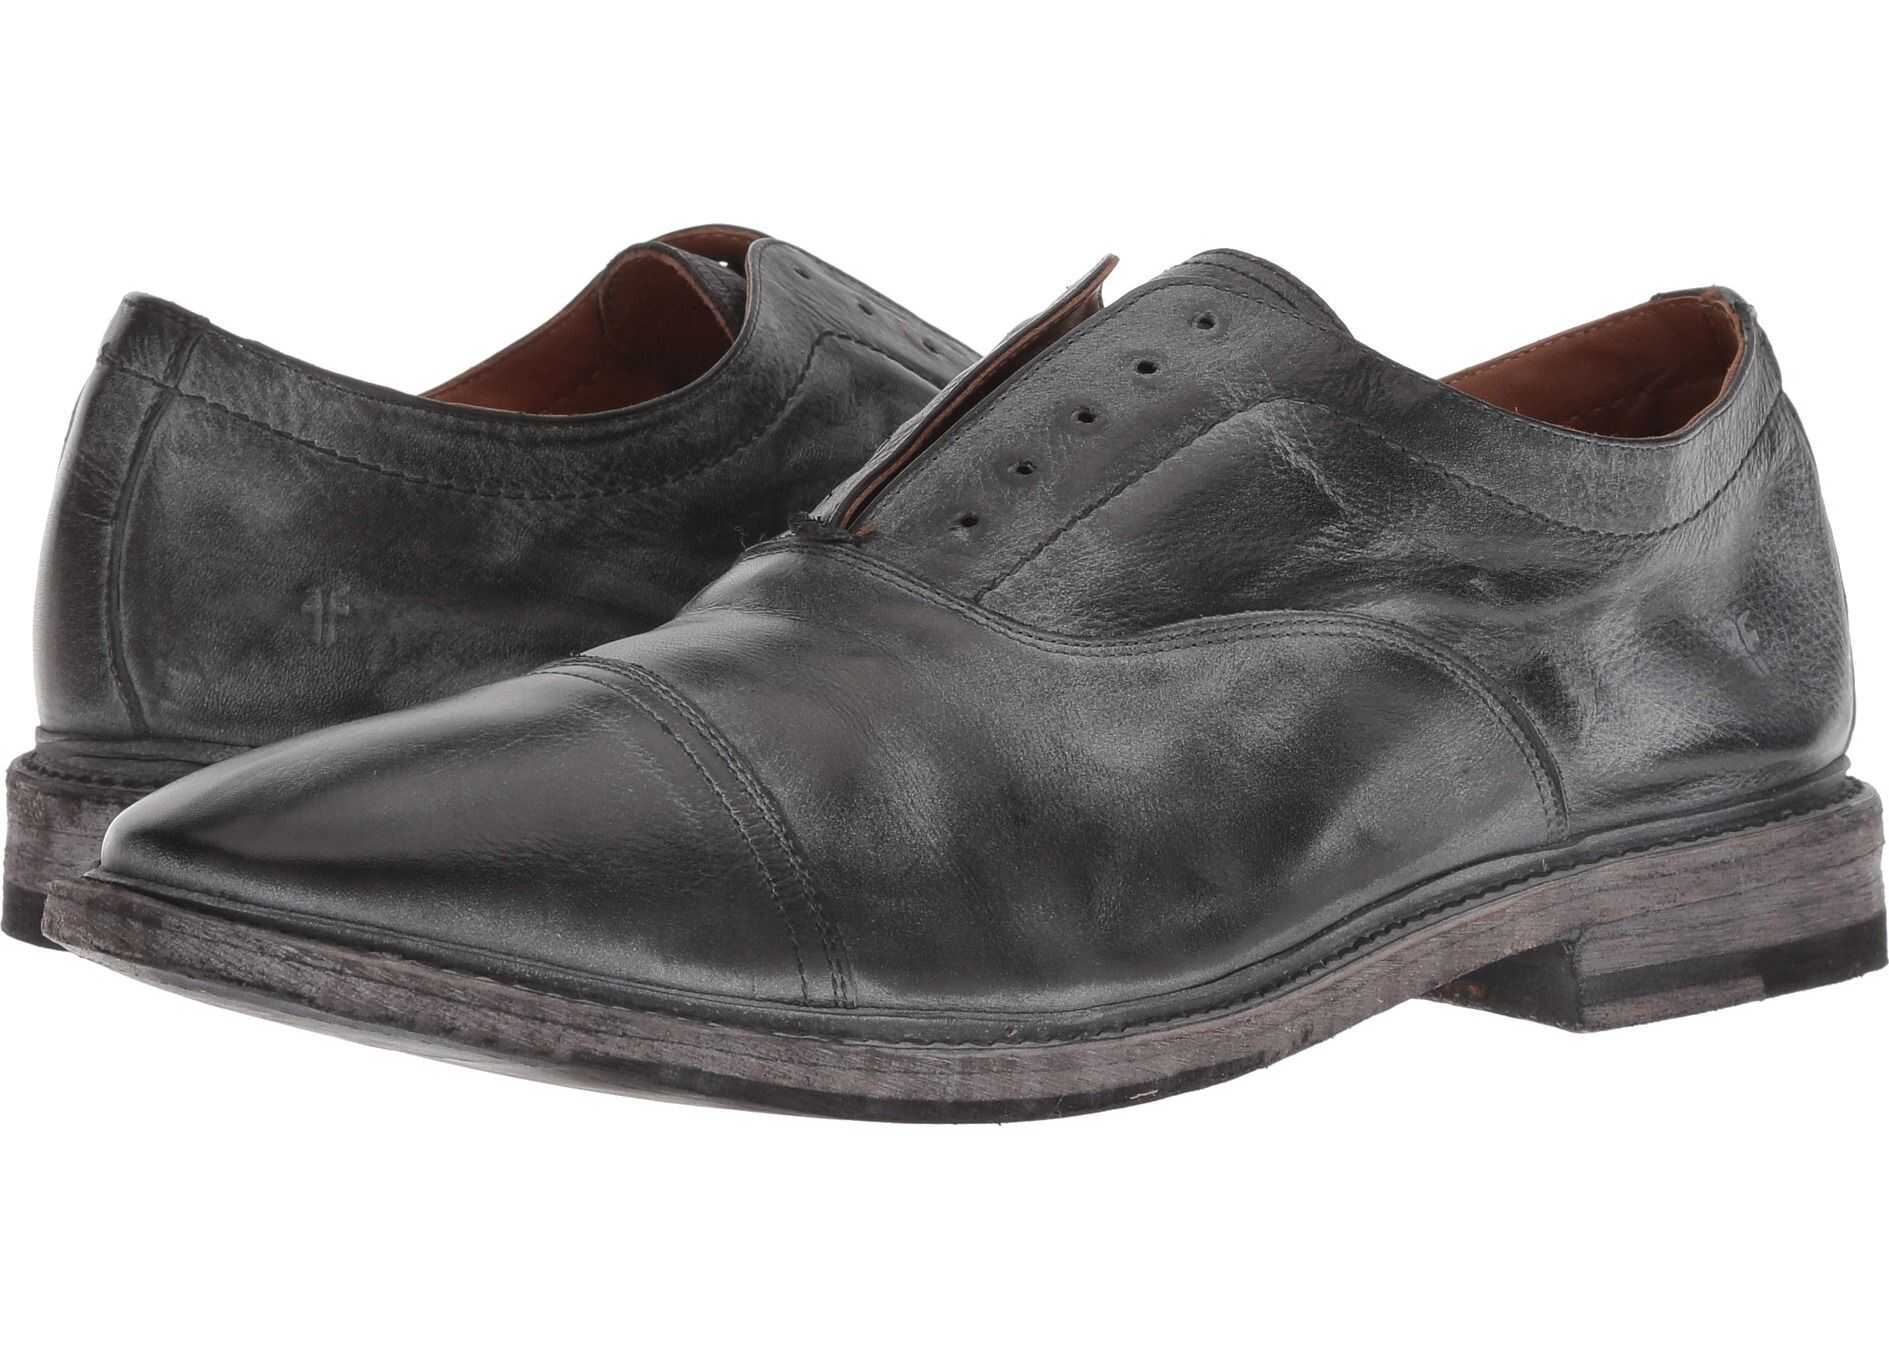 Frye Paul Bal Oxford Black Waxed Polished Soft Full Grain